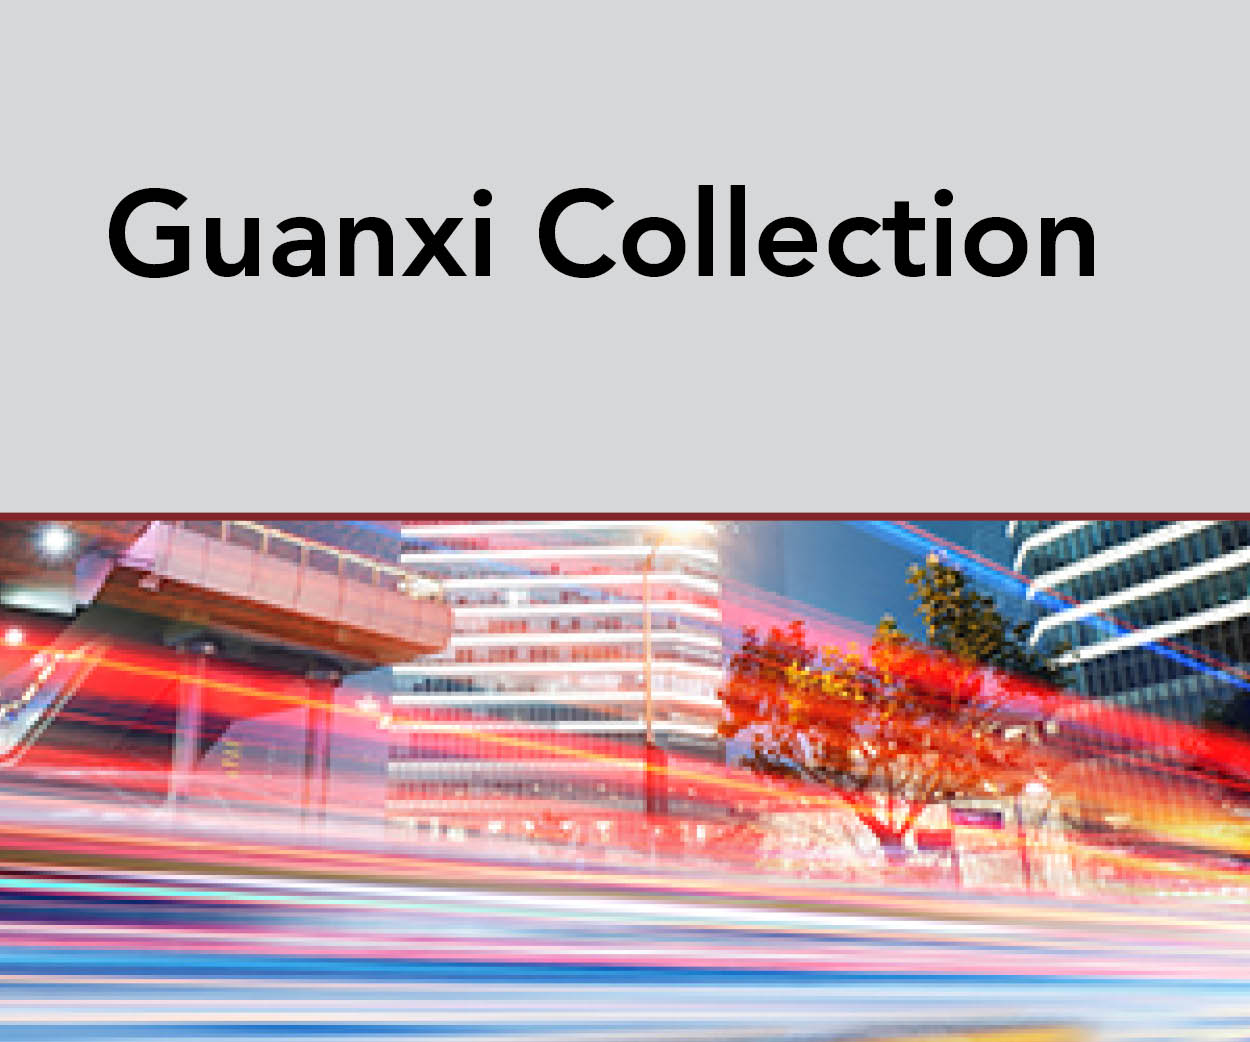 Guanxi Collection